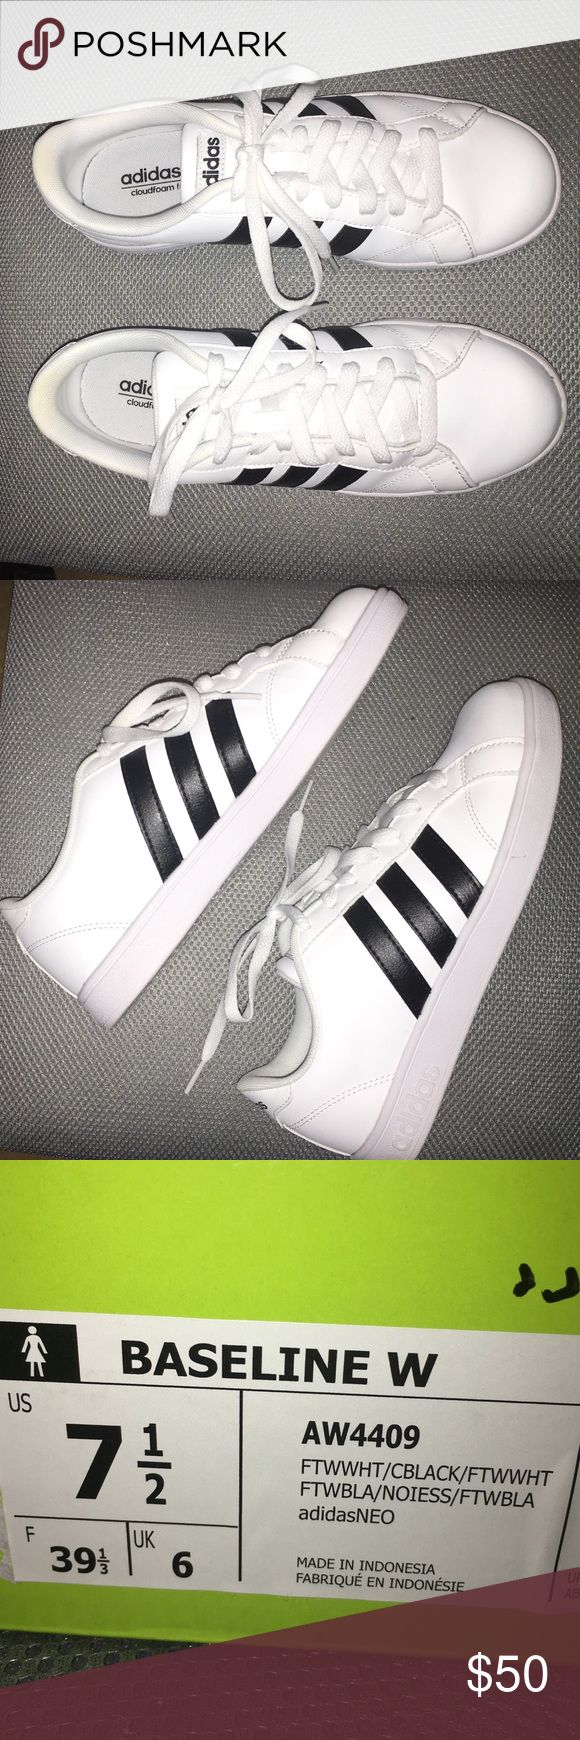 Adidas Neo Baseline Sneakers Black & White Adidas Neo Baseline Sneakers. Only worn once to try on! Too big for me. Box included. Willing to take offers!!! Adidas Shoes Sneakers